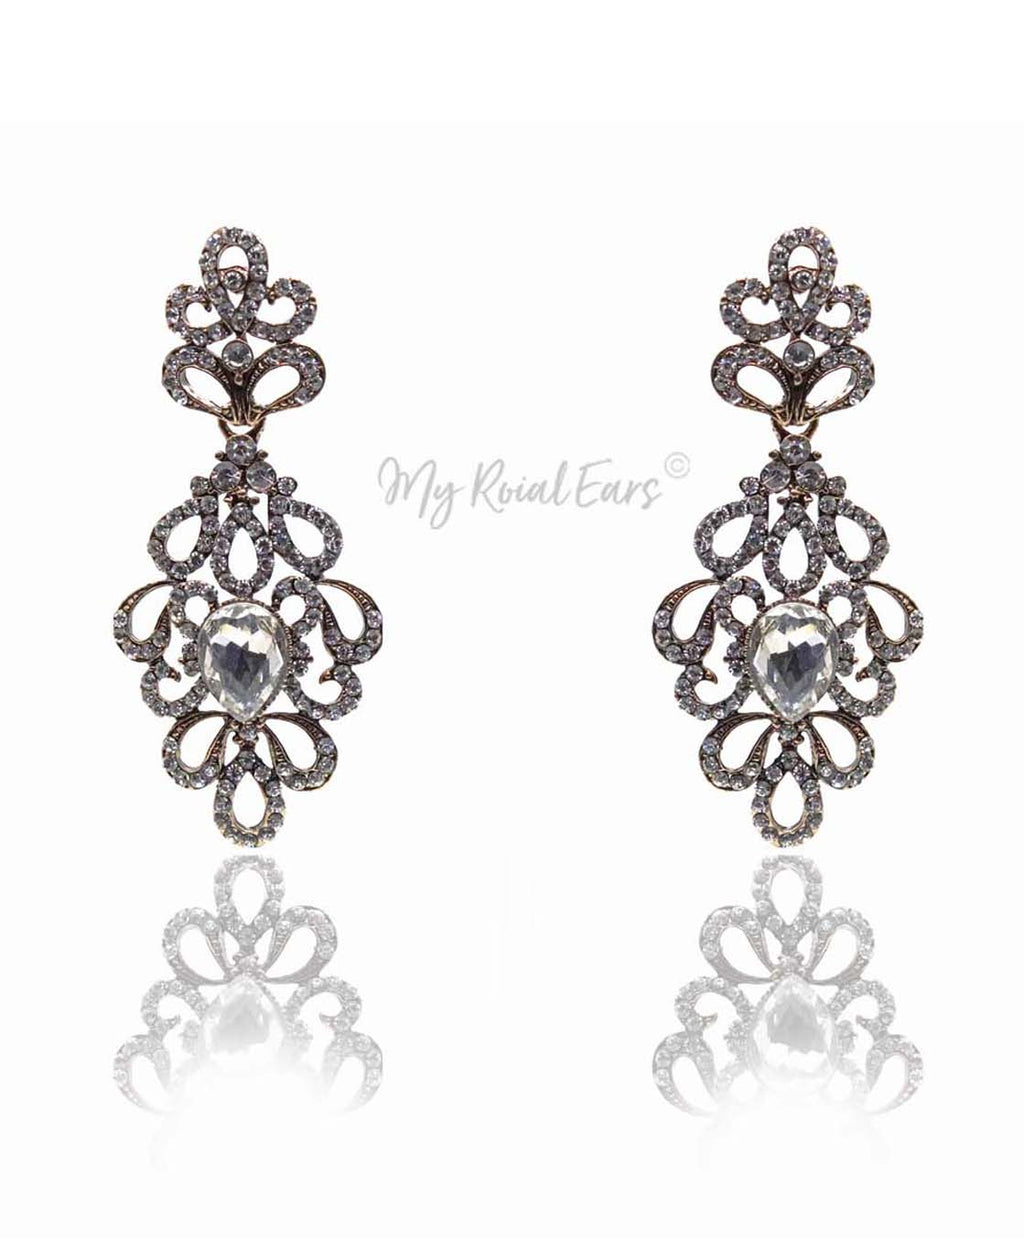 Q.Anastasia-royal luxury chandelier statement bridal earrings - My Roial Ears LTD